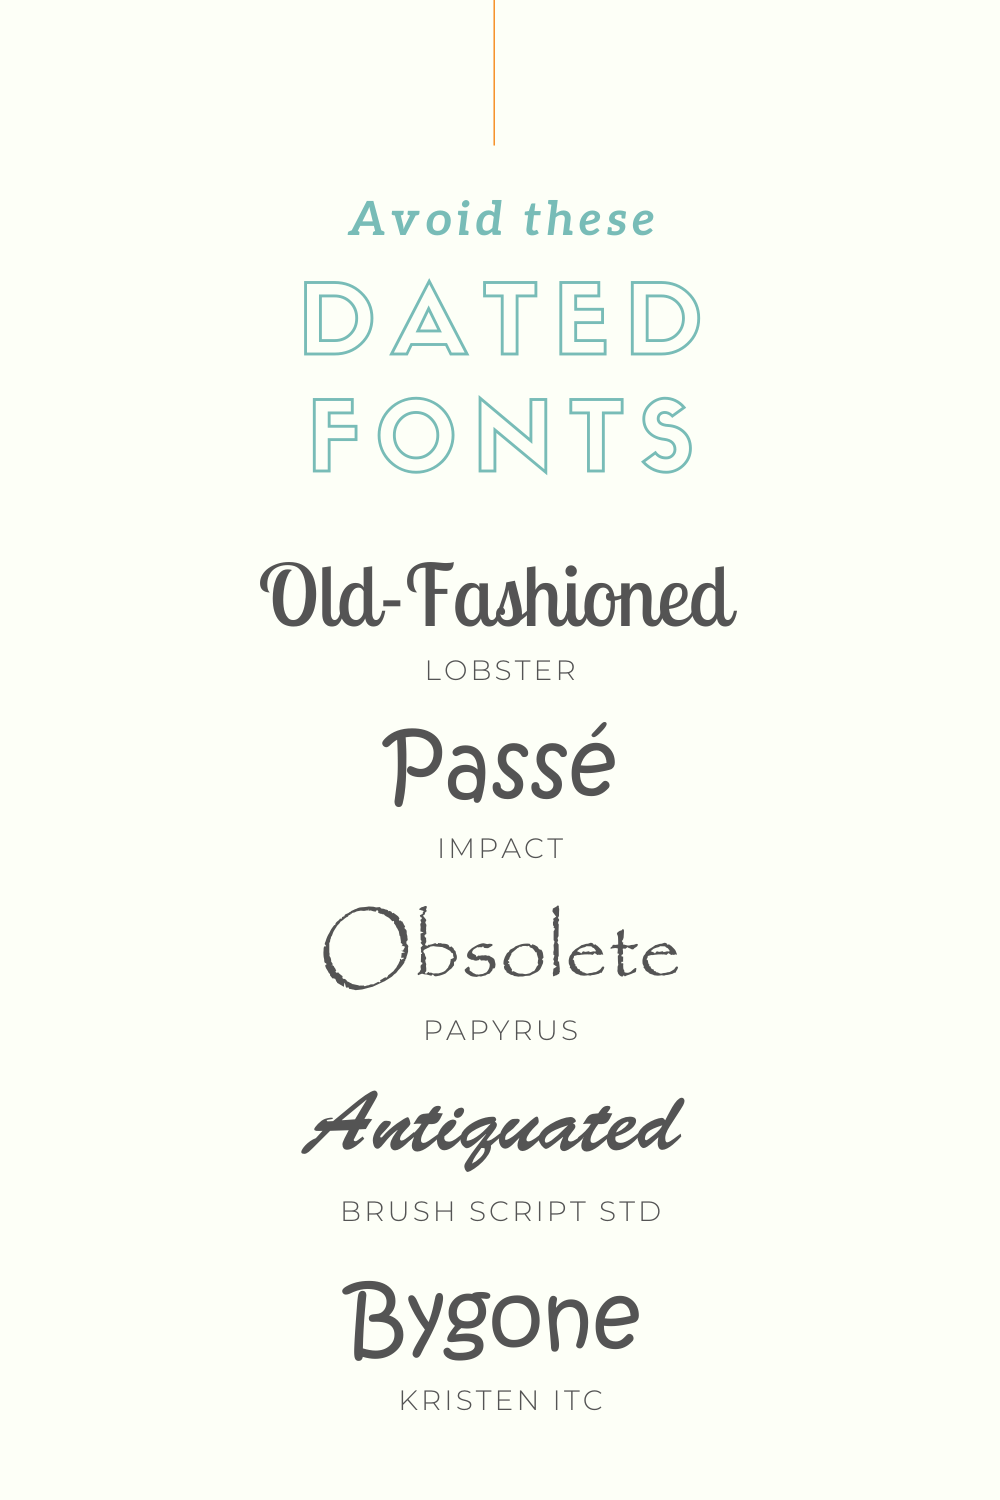 Avoid these dated fonts